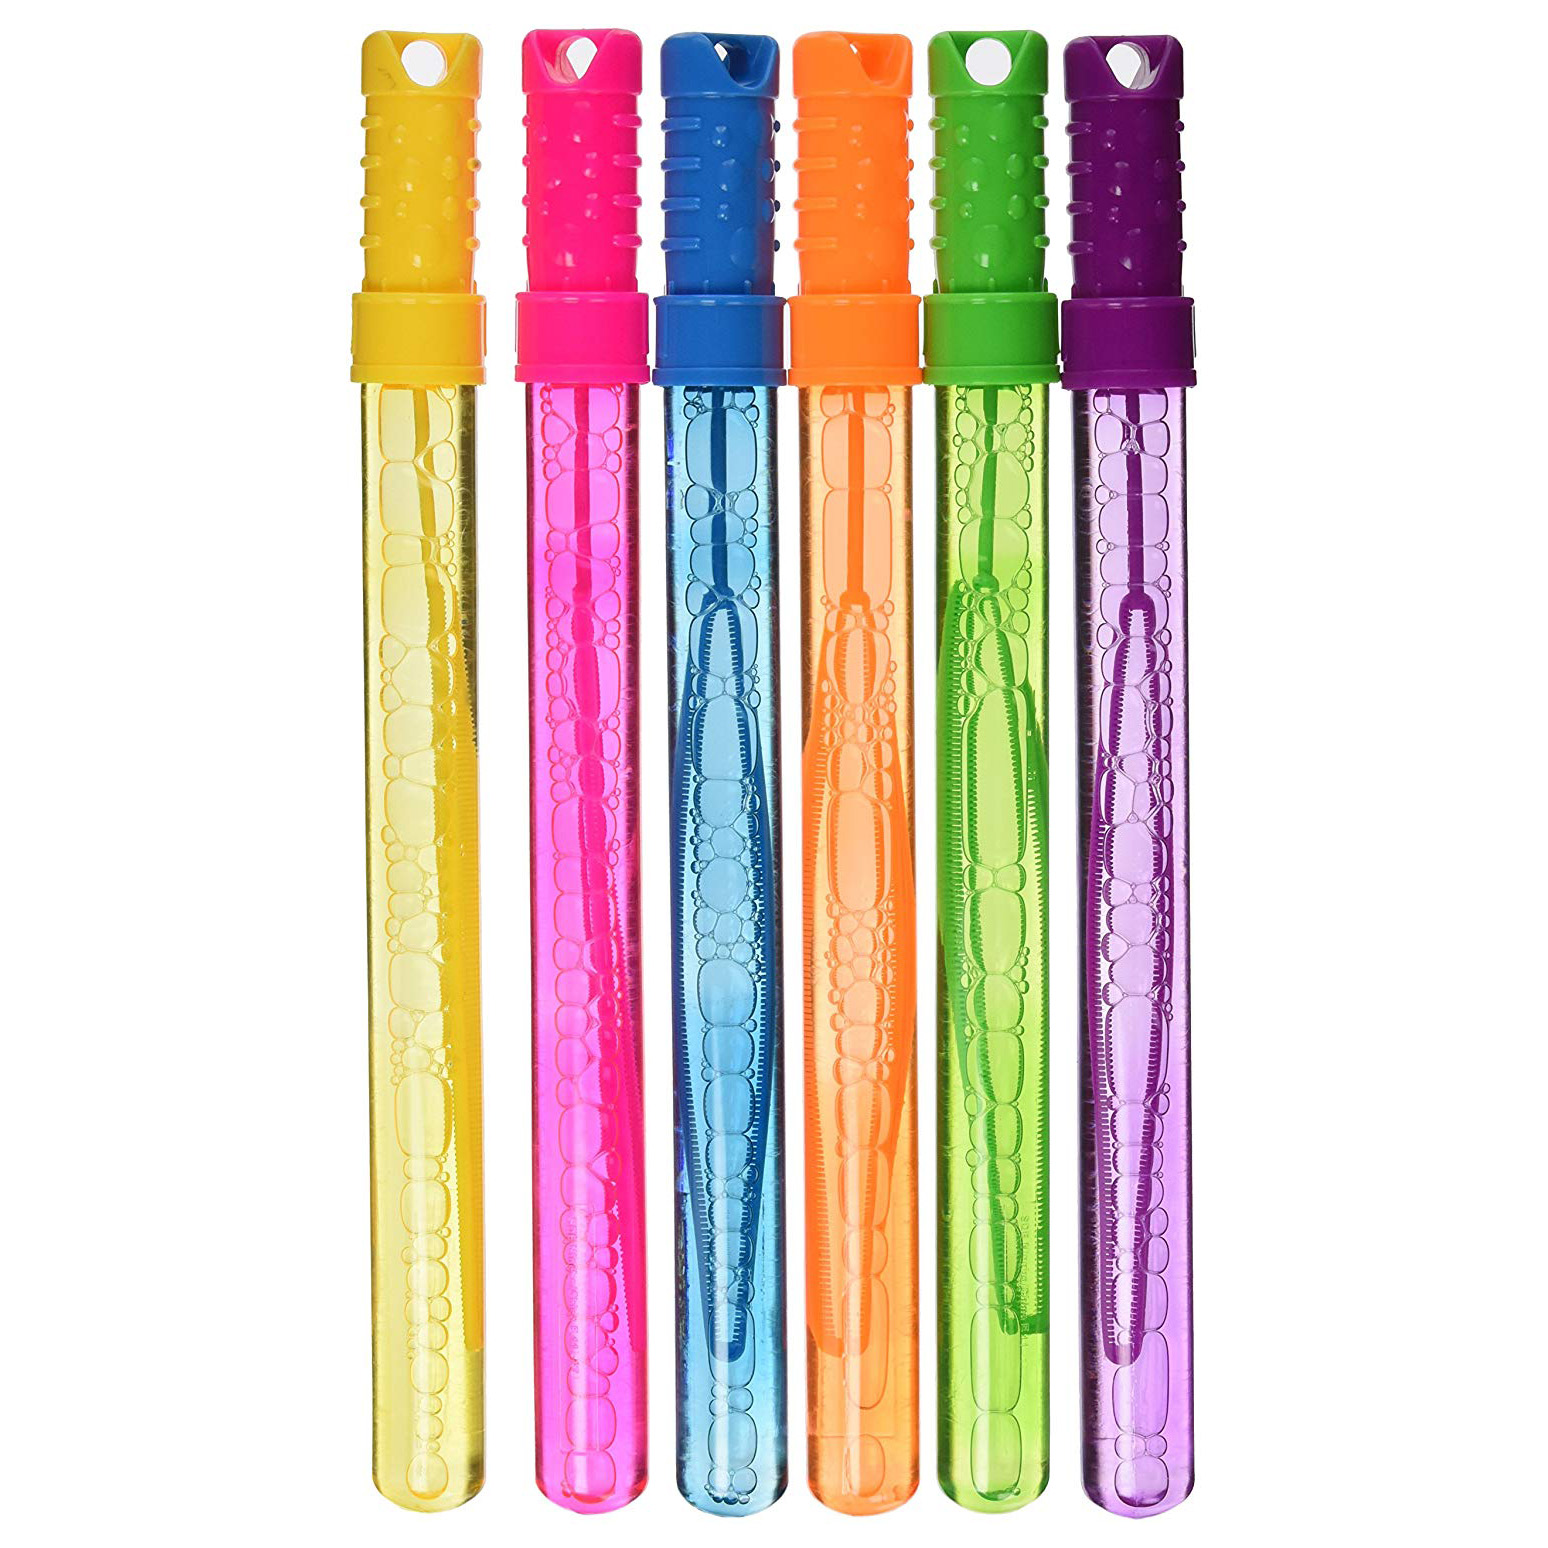 Maxx Bubbles Bubble Wands